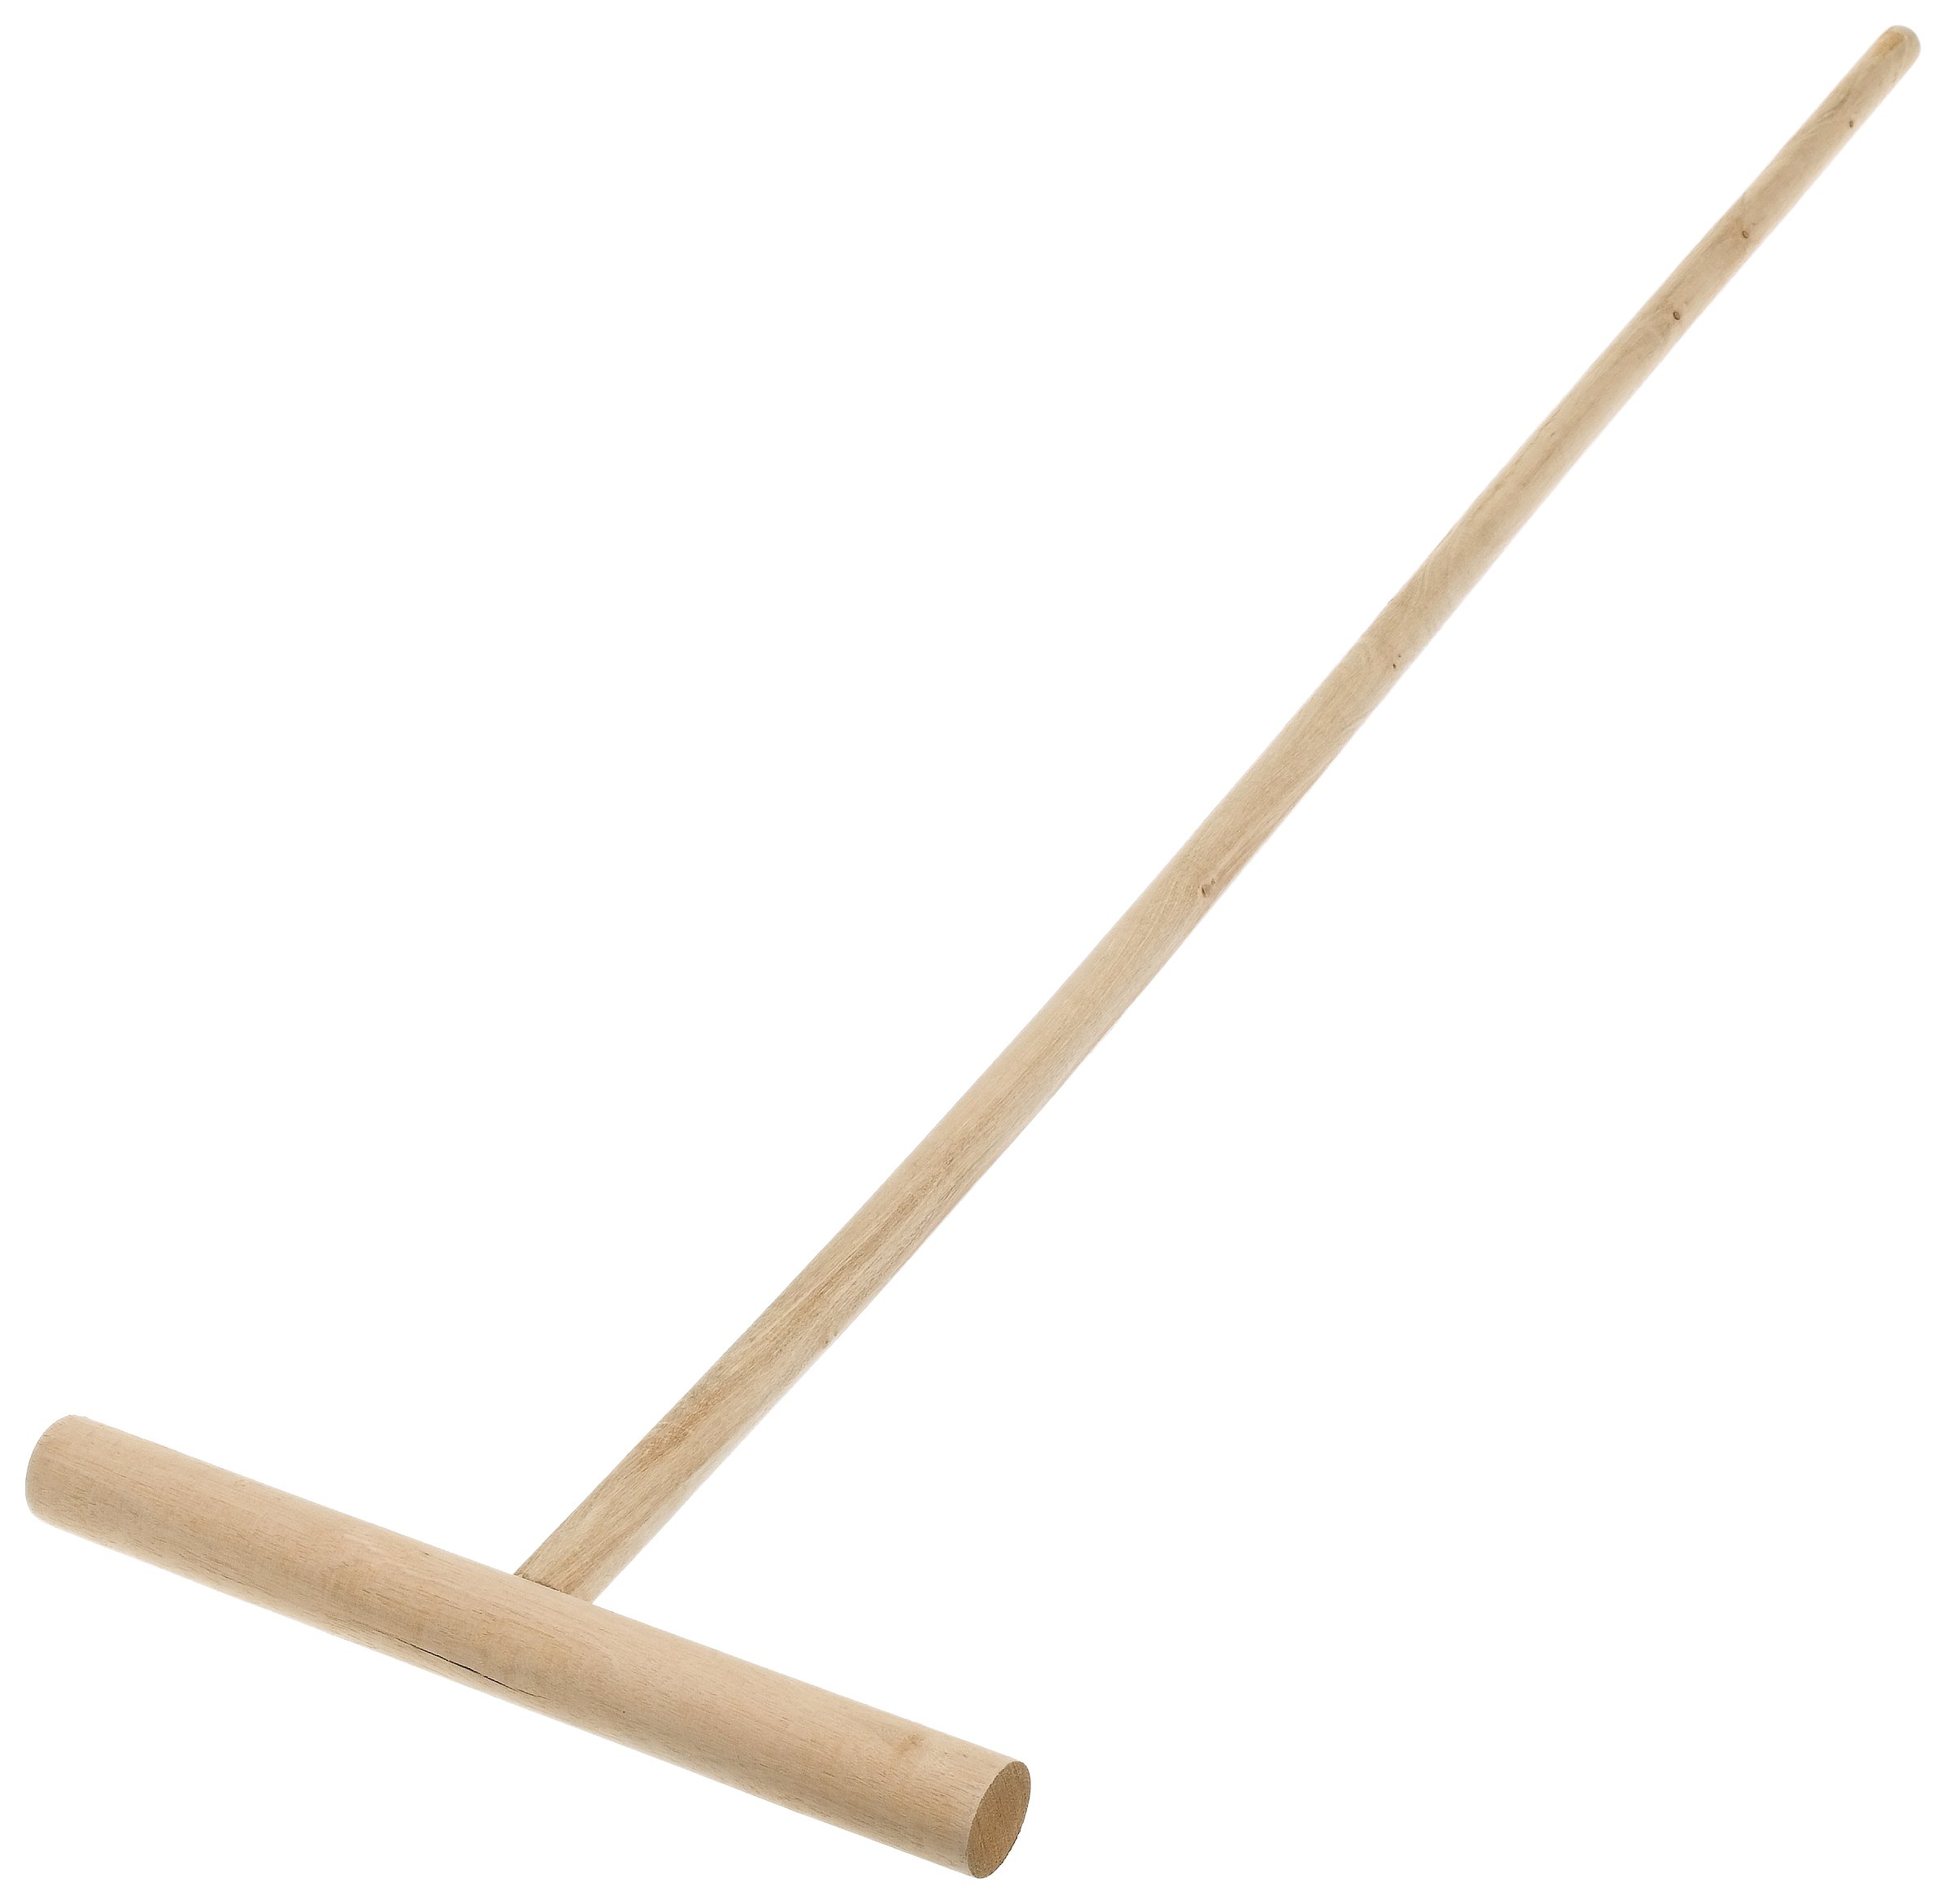 IMUSA USA I522-28 Cuban Wood Mop Stick